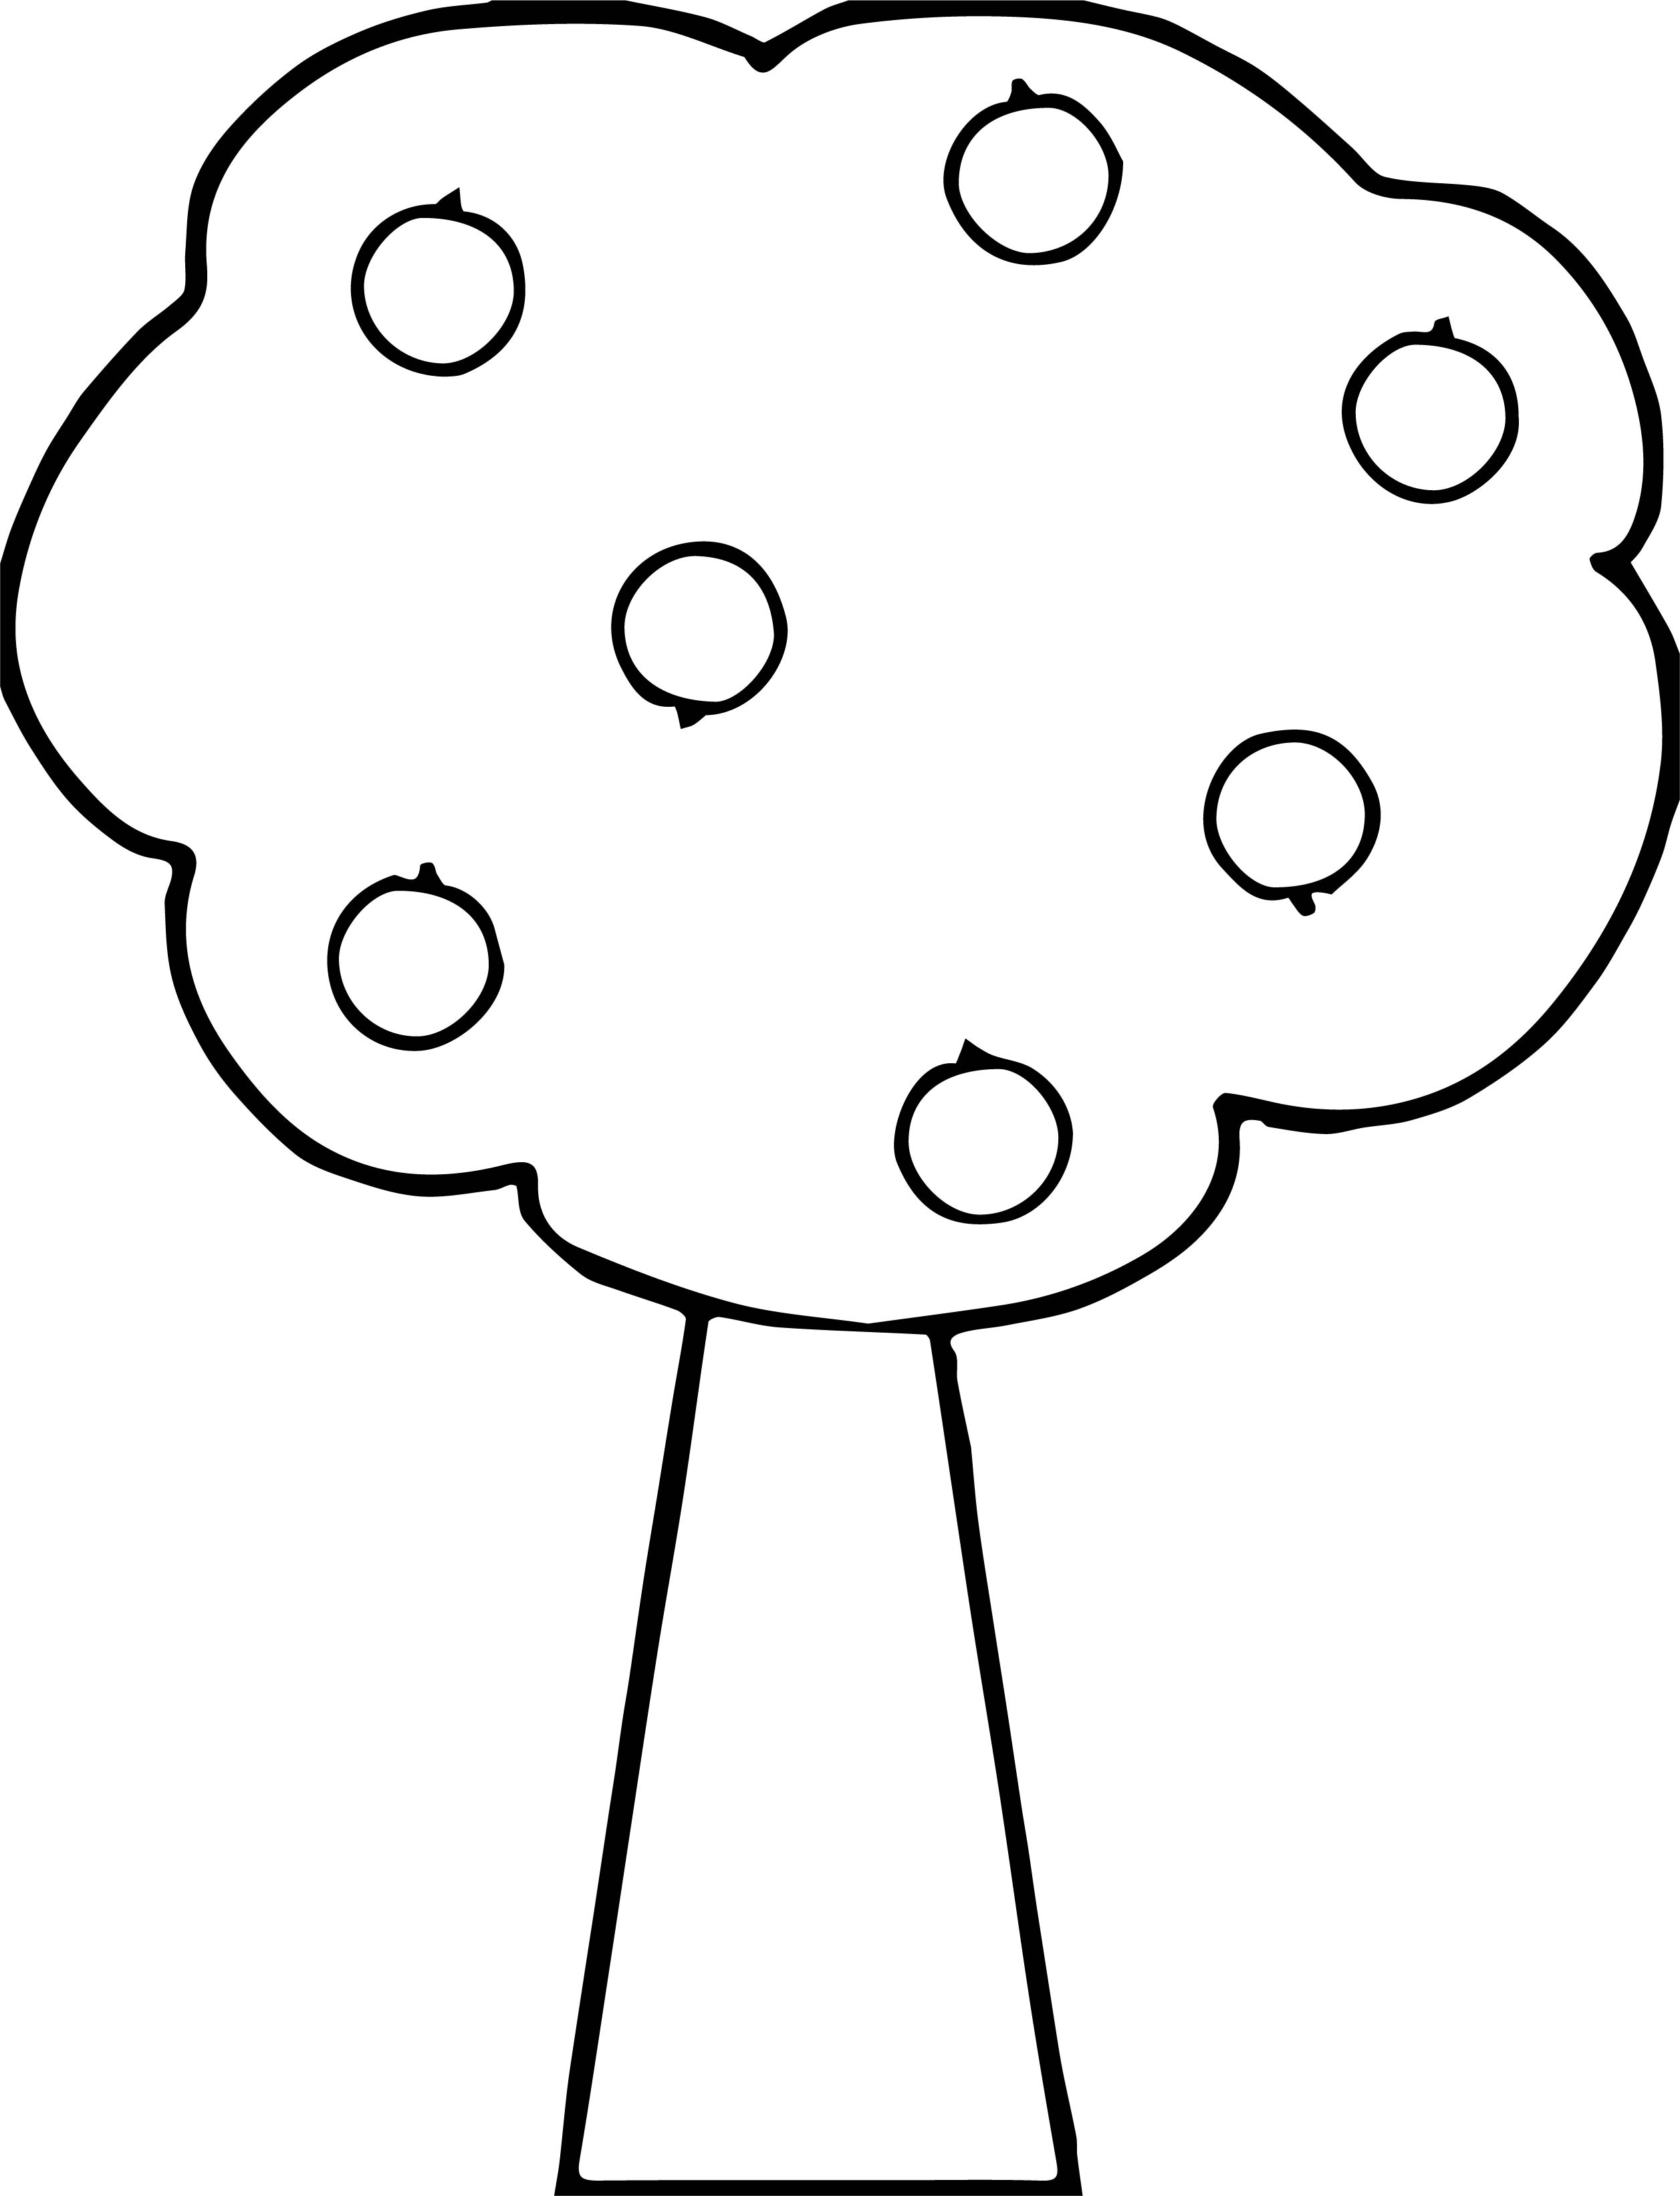 Good Apple Tree Coloring Pages